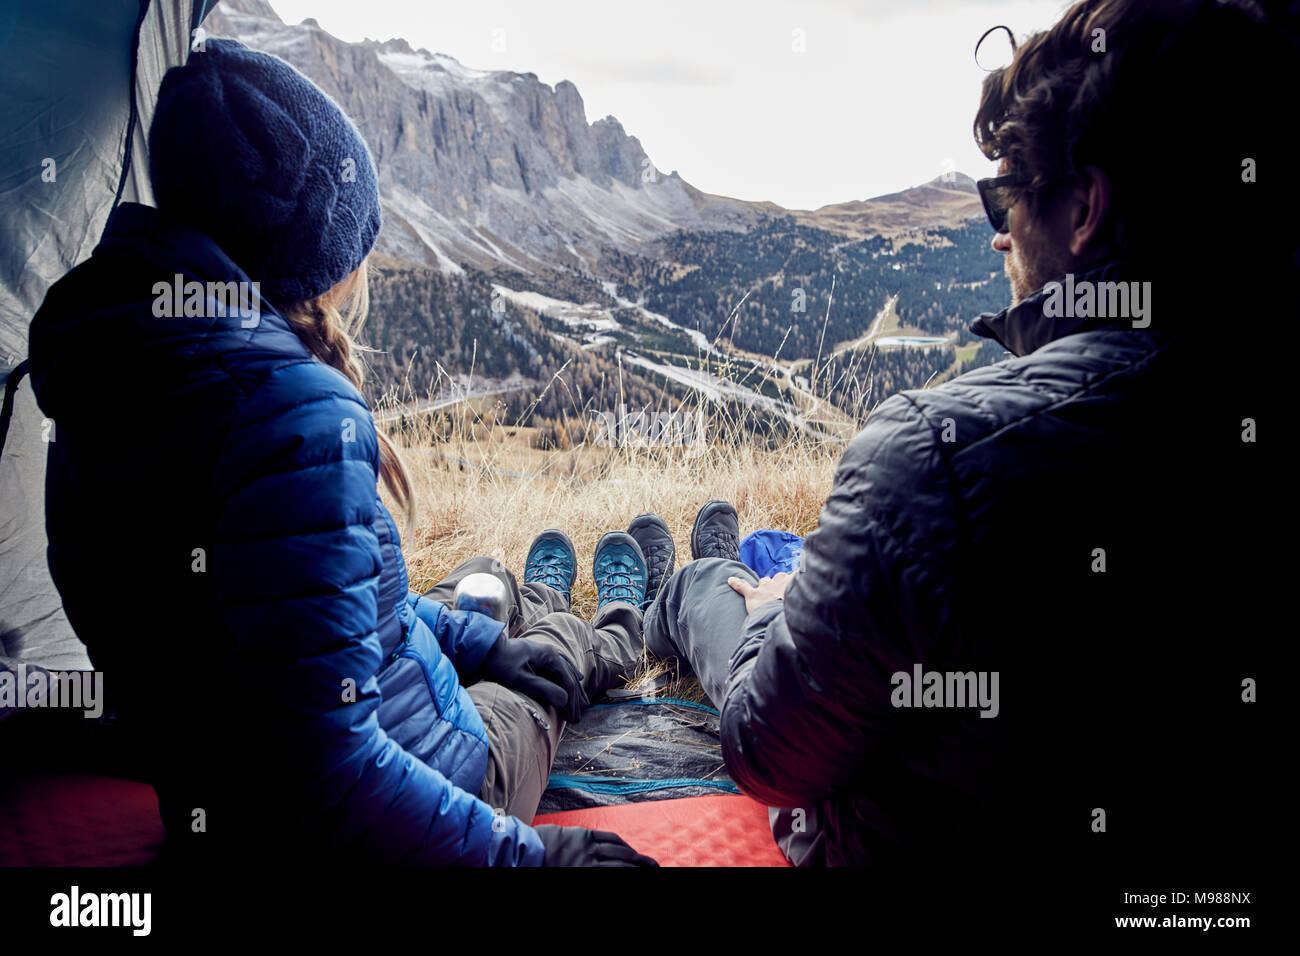 Couple sitting in tent in the mountains looking at view - Stock Image